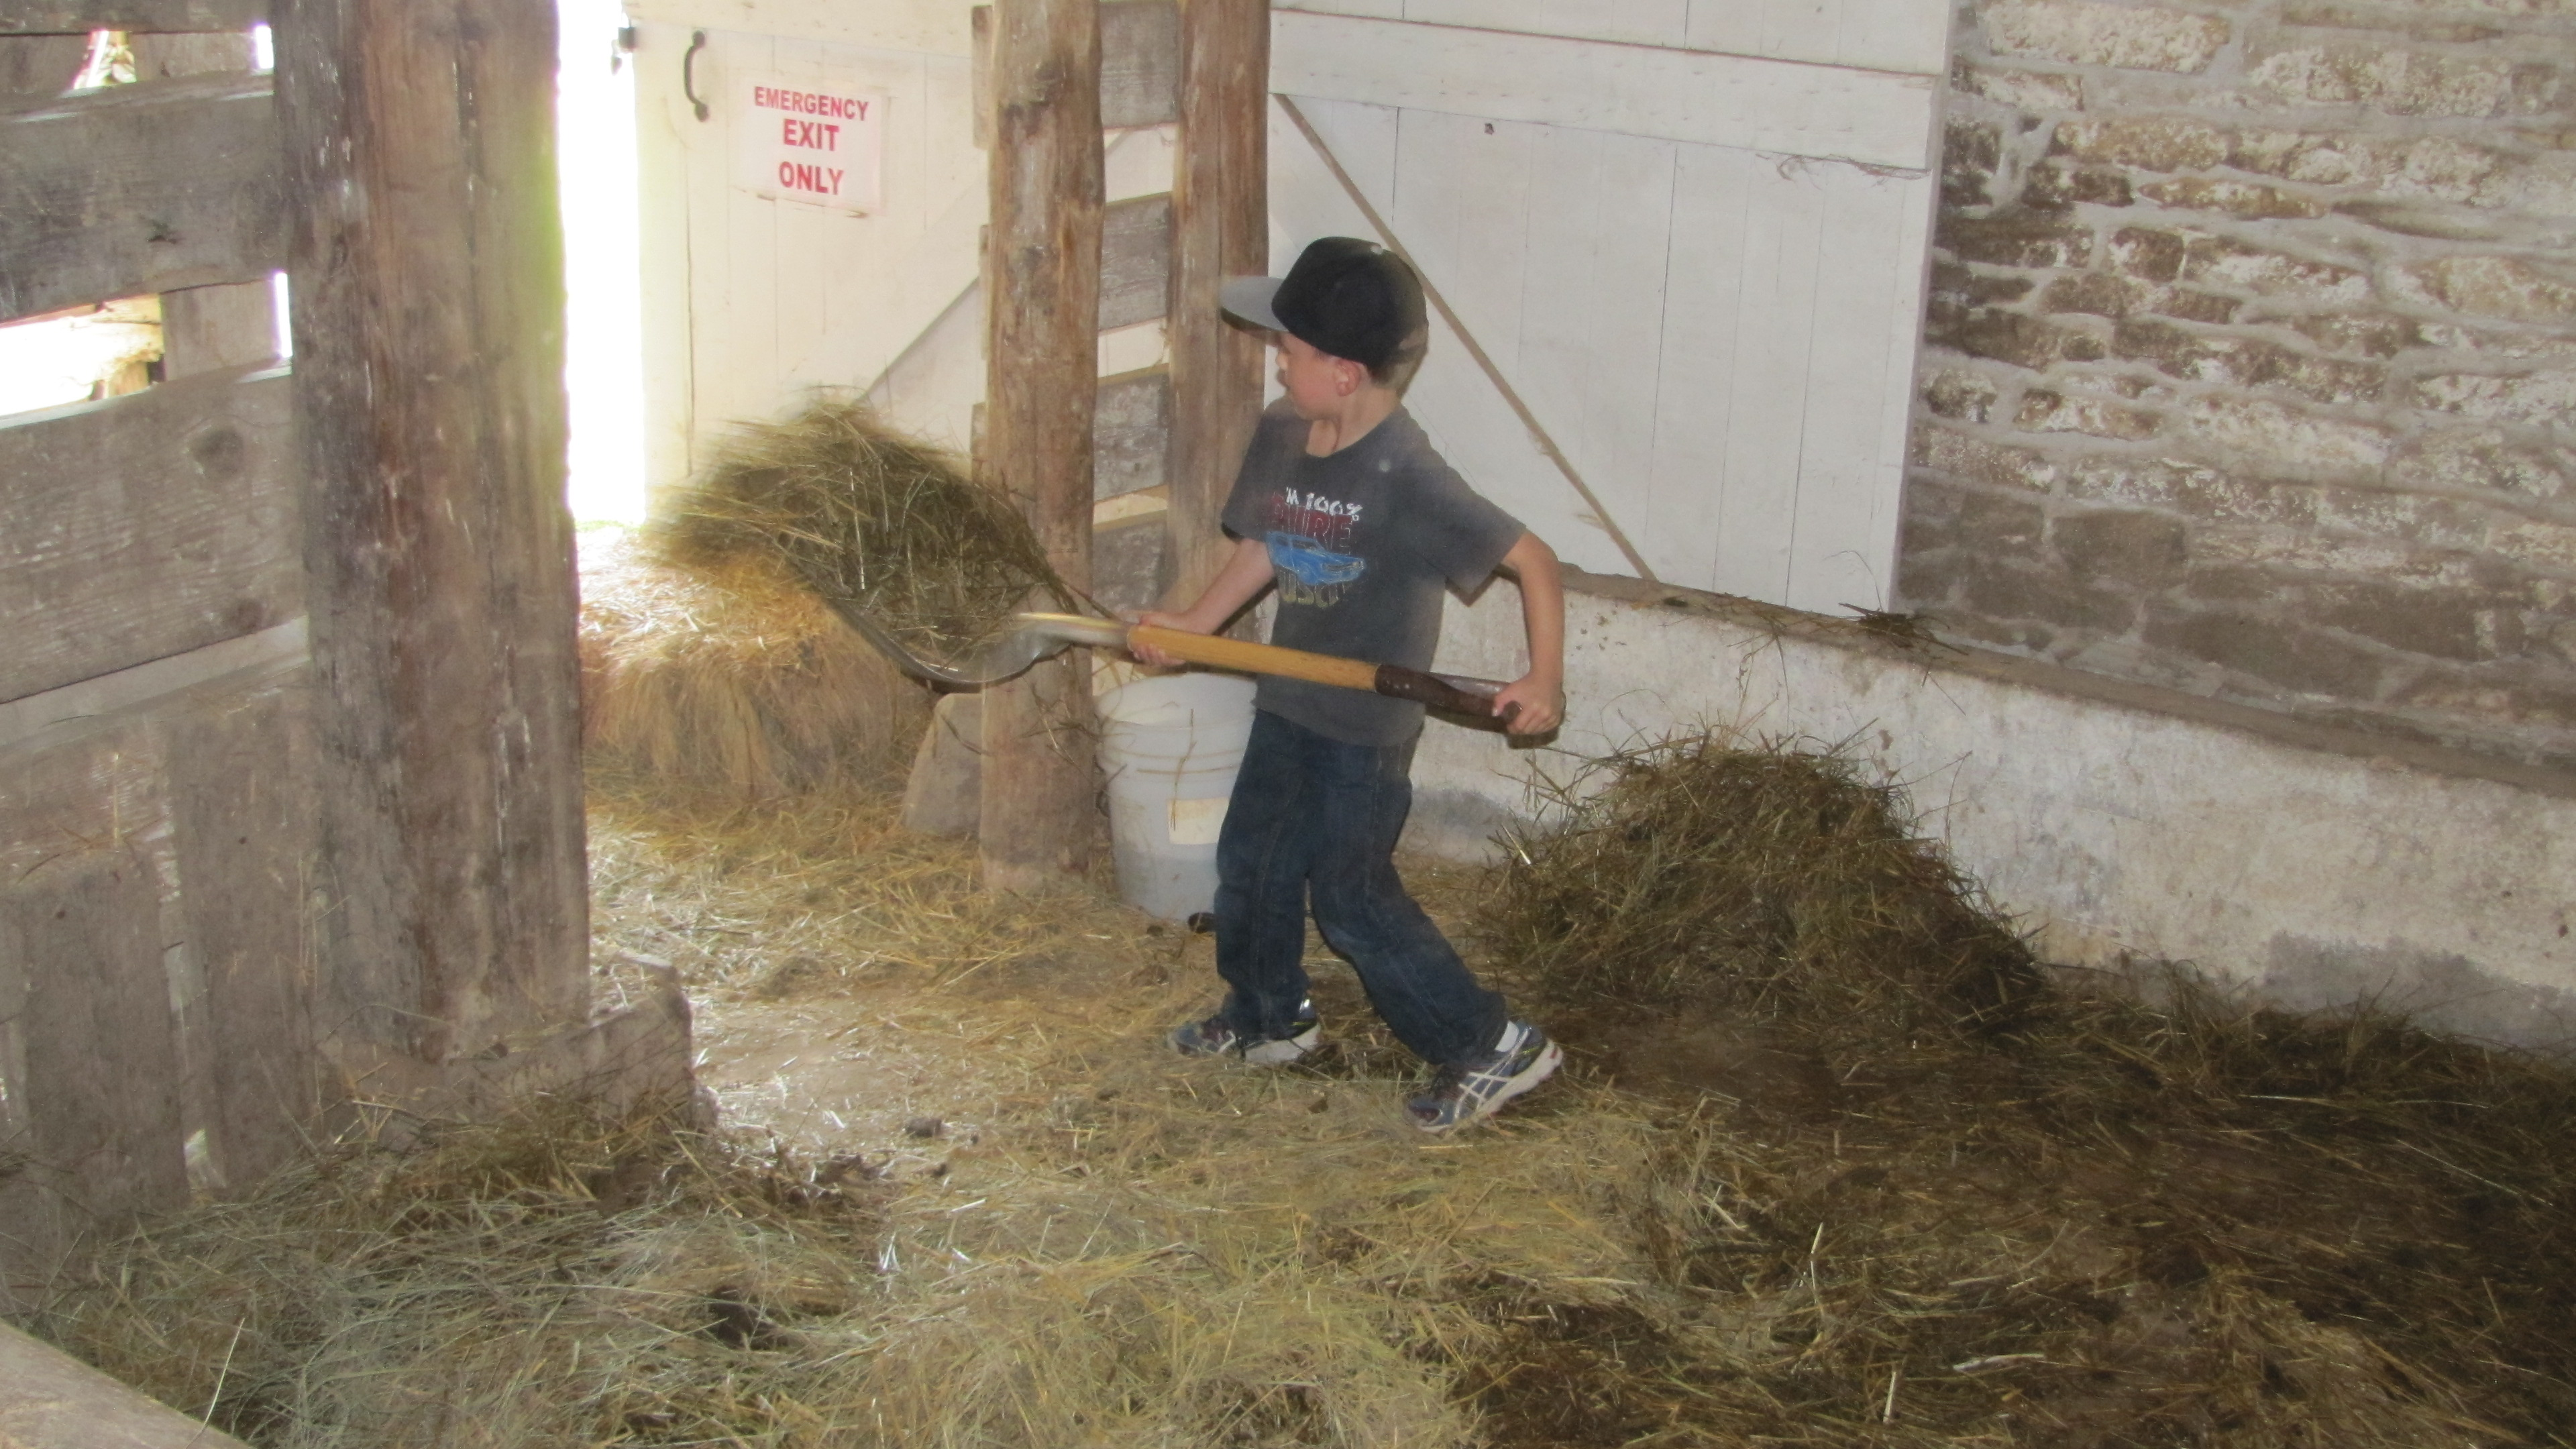 Child cleaning out the dirty hay and manure as part of kid's activities.